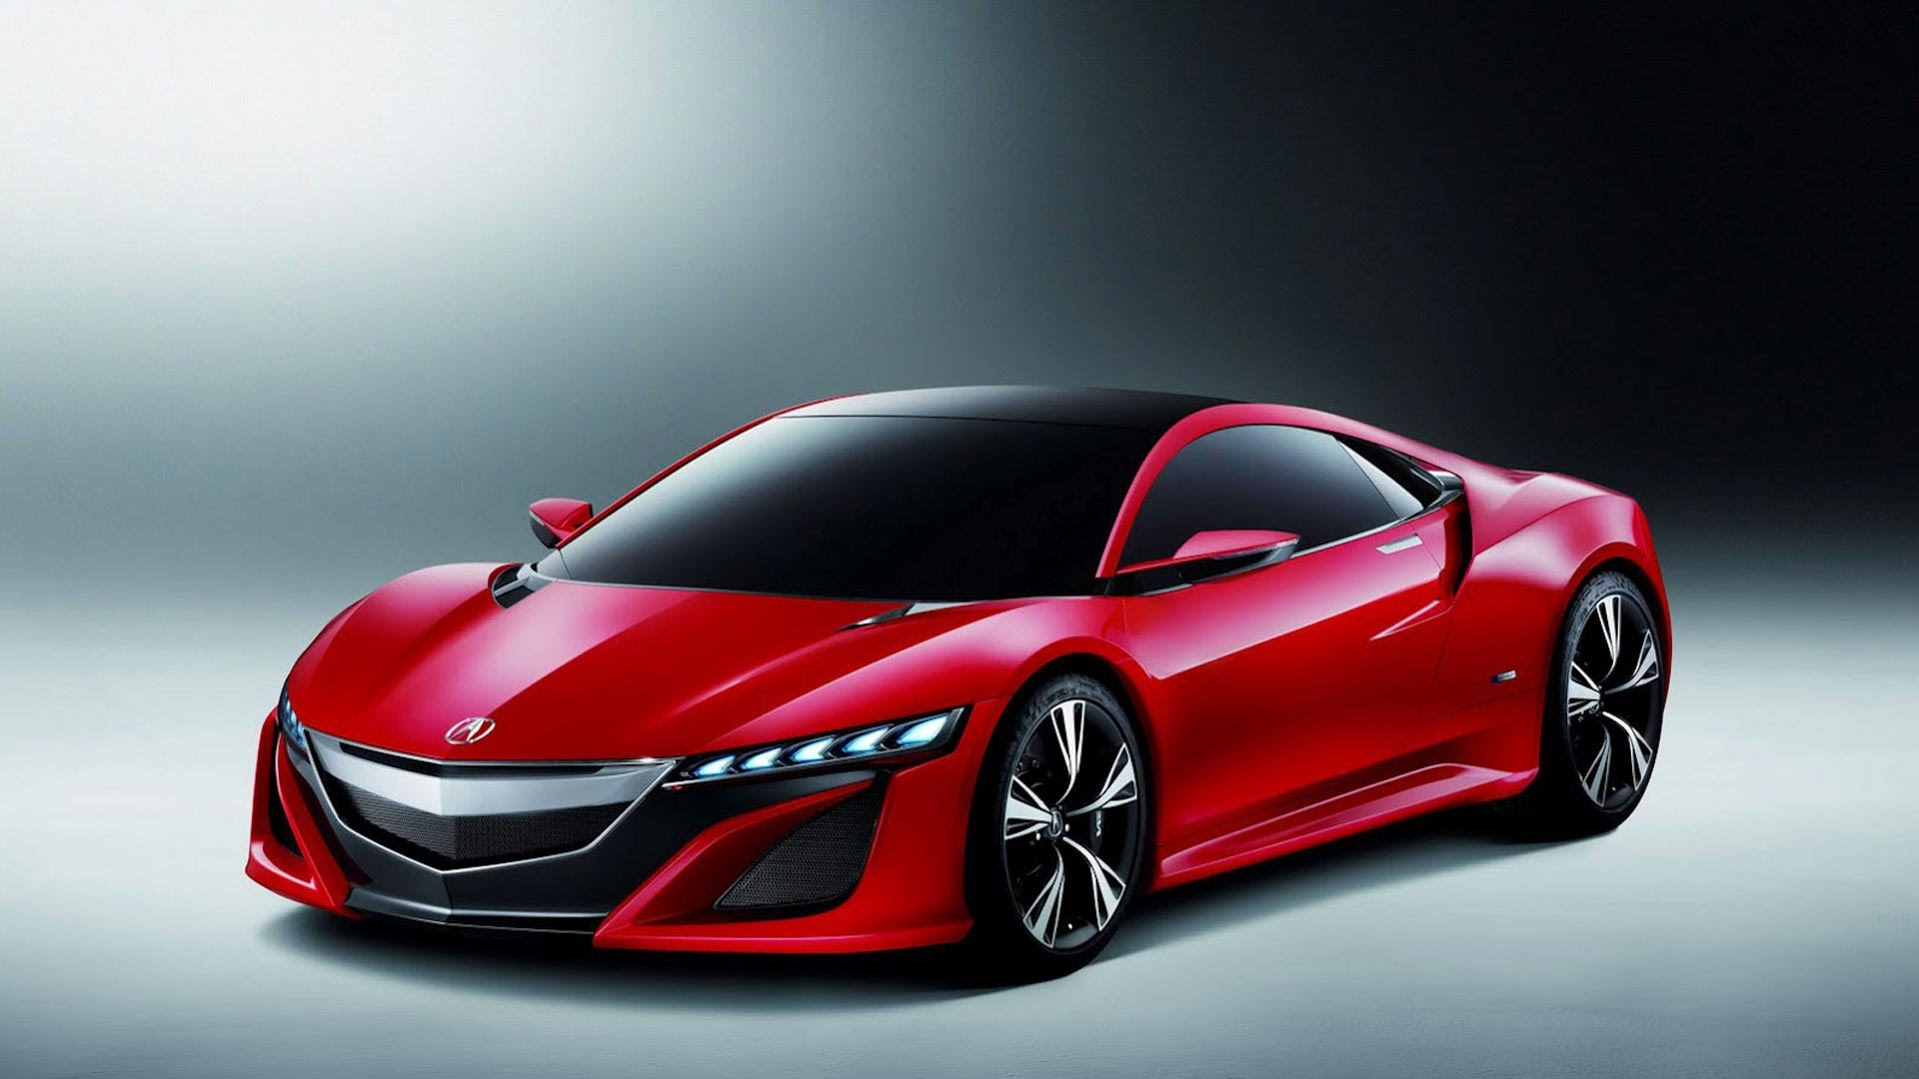 Acura Nsx Cool - HD Desktop Wallpapers